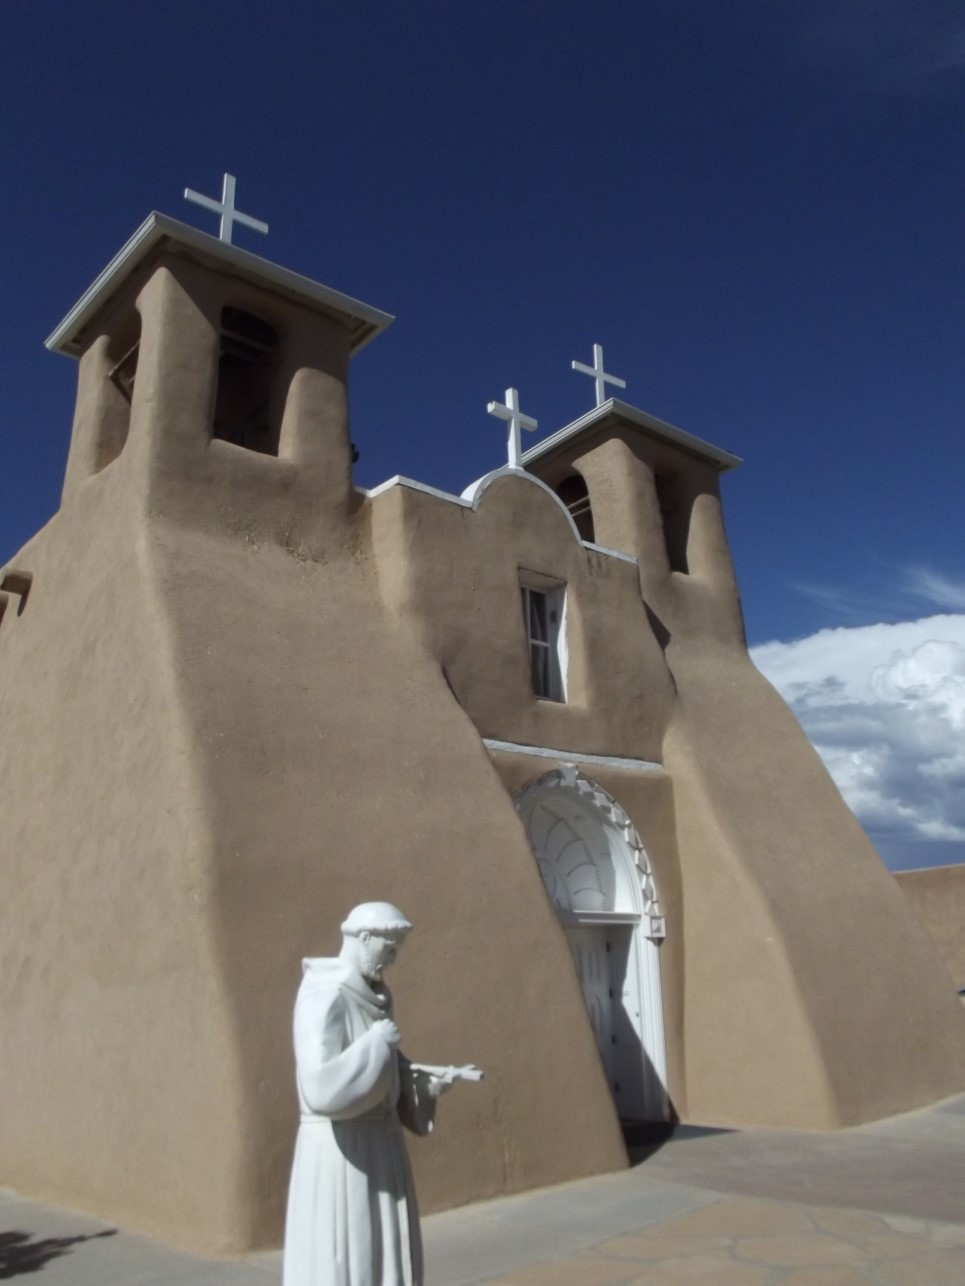 Solid adobe church with white crosses and statue